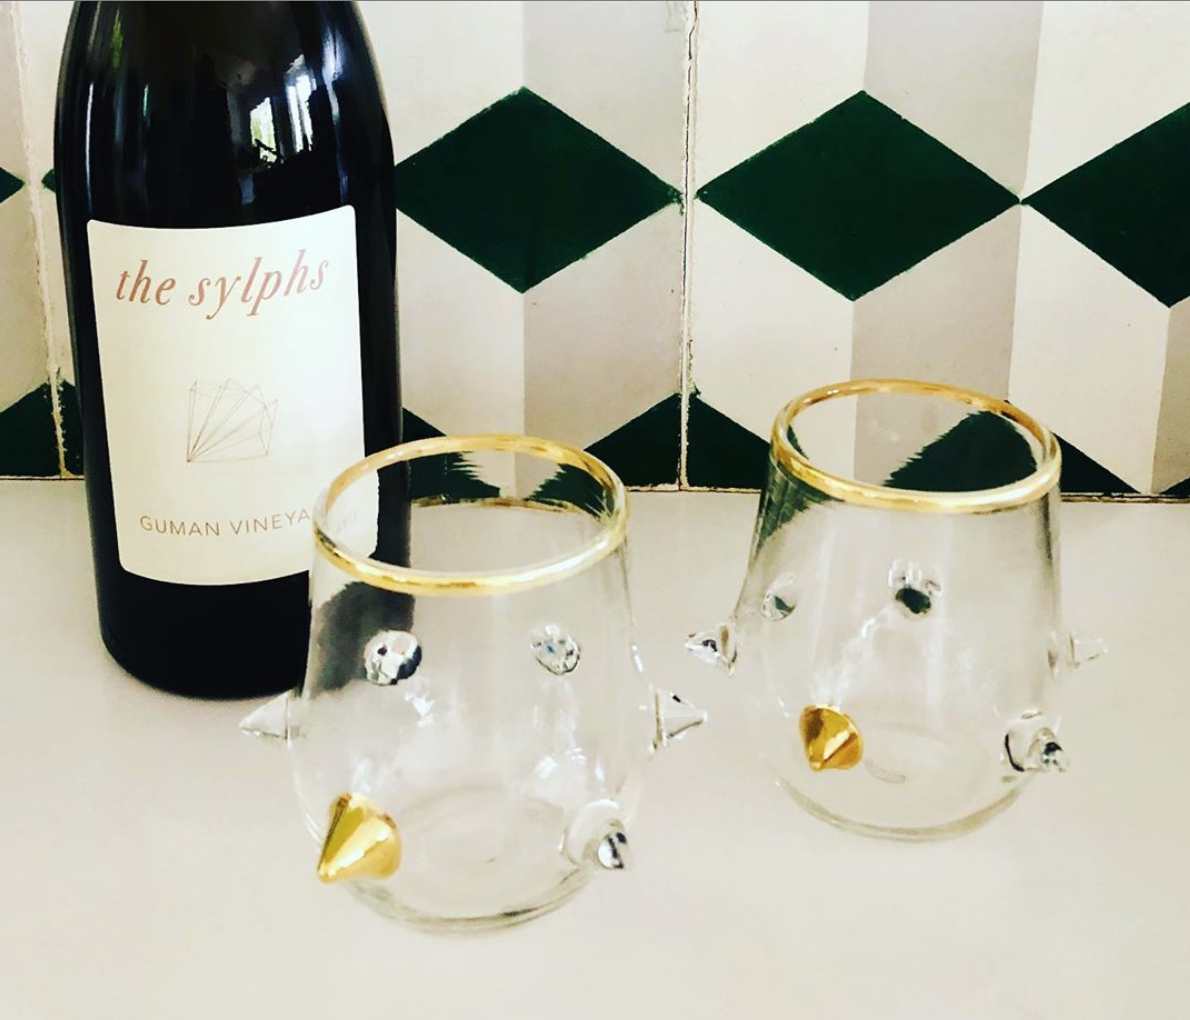 And a special shout out to  @amesingham —we loved your IG post:   Prettiest little edgy glasses I've ever seen!! @neptune_glassworks thank you so much @snyderdiamond and @gc_collaborative and a big congratulations on such a successful 70 years!!! To many more! 🥂